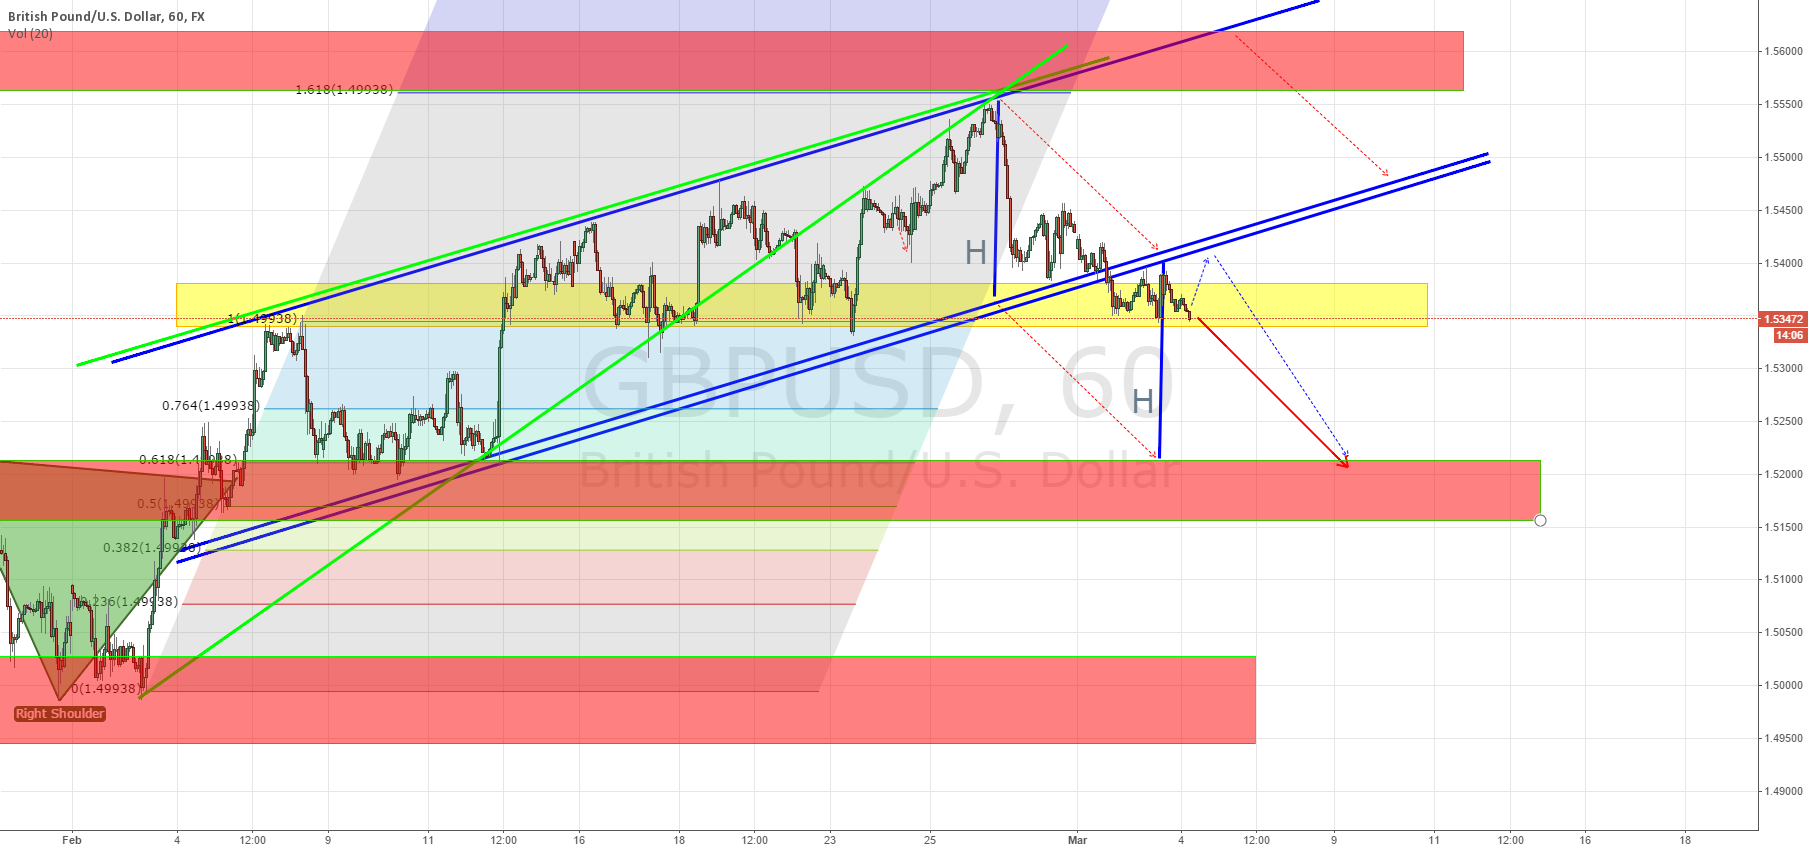 GBPUSD previous long position is closed & open short position